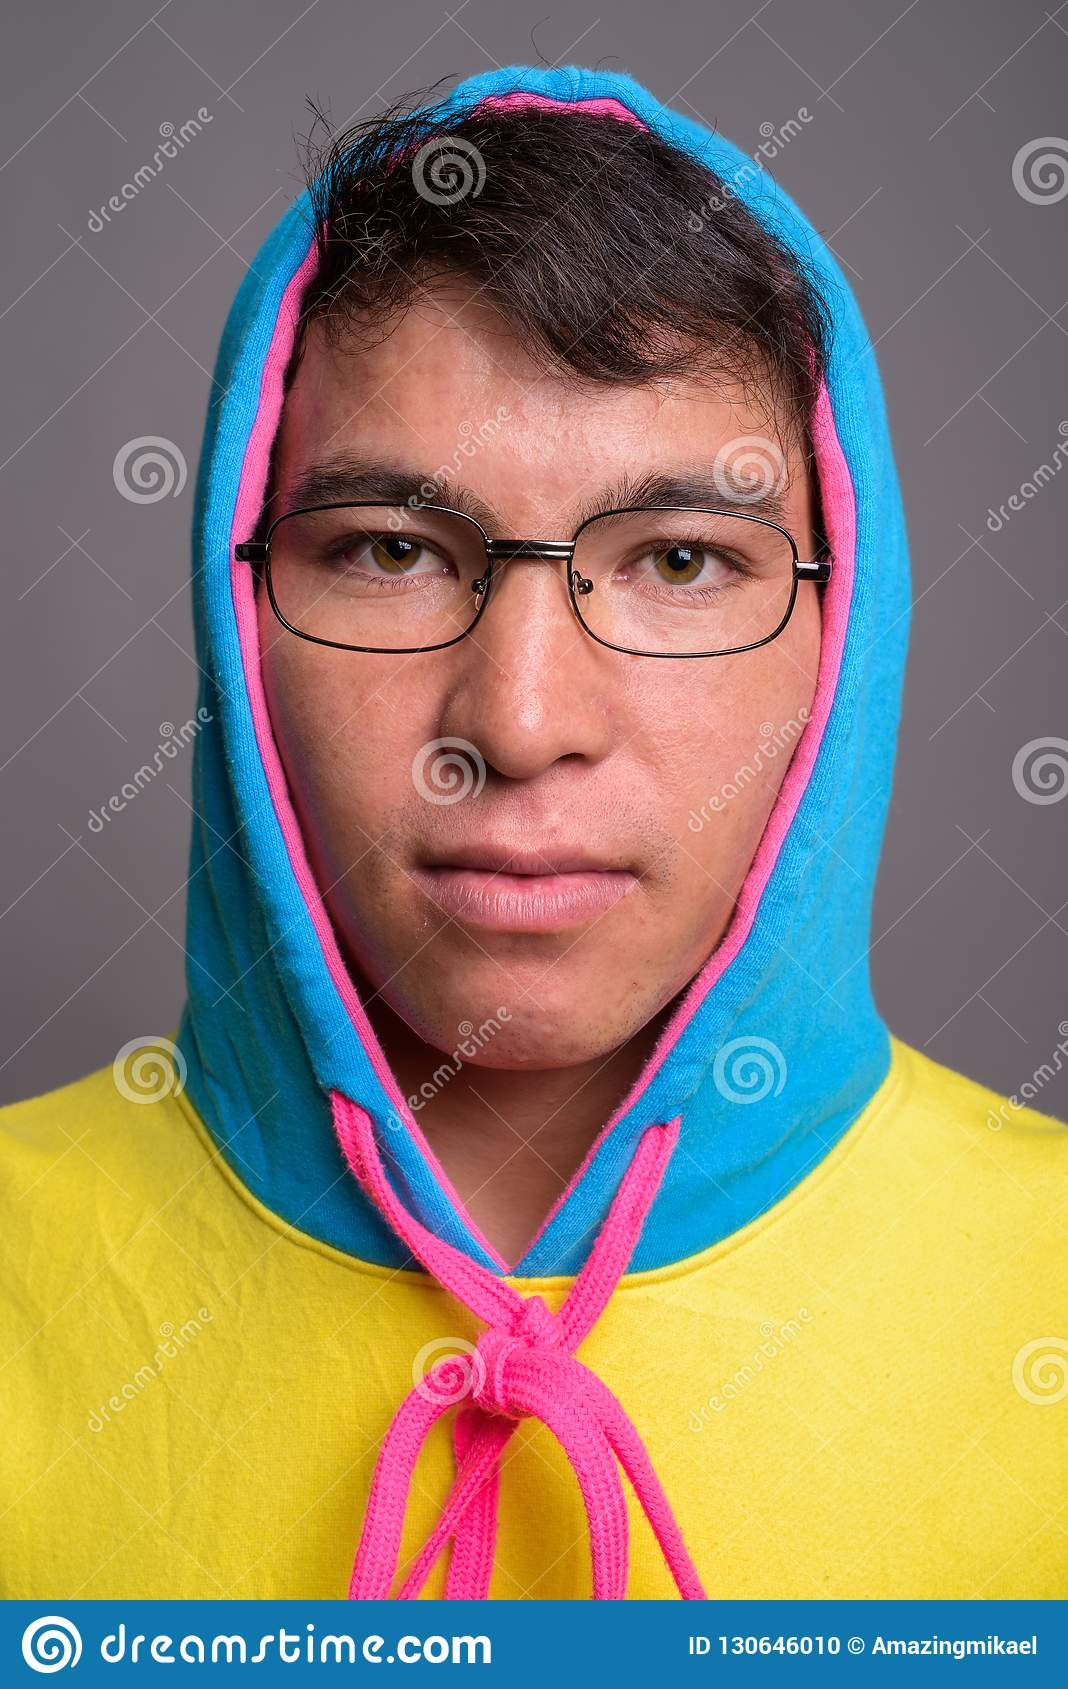 Young Asian man wearing colorful hoodie and eyeglasses against g